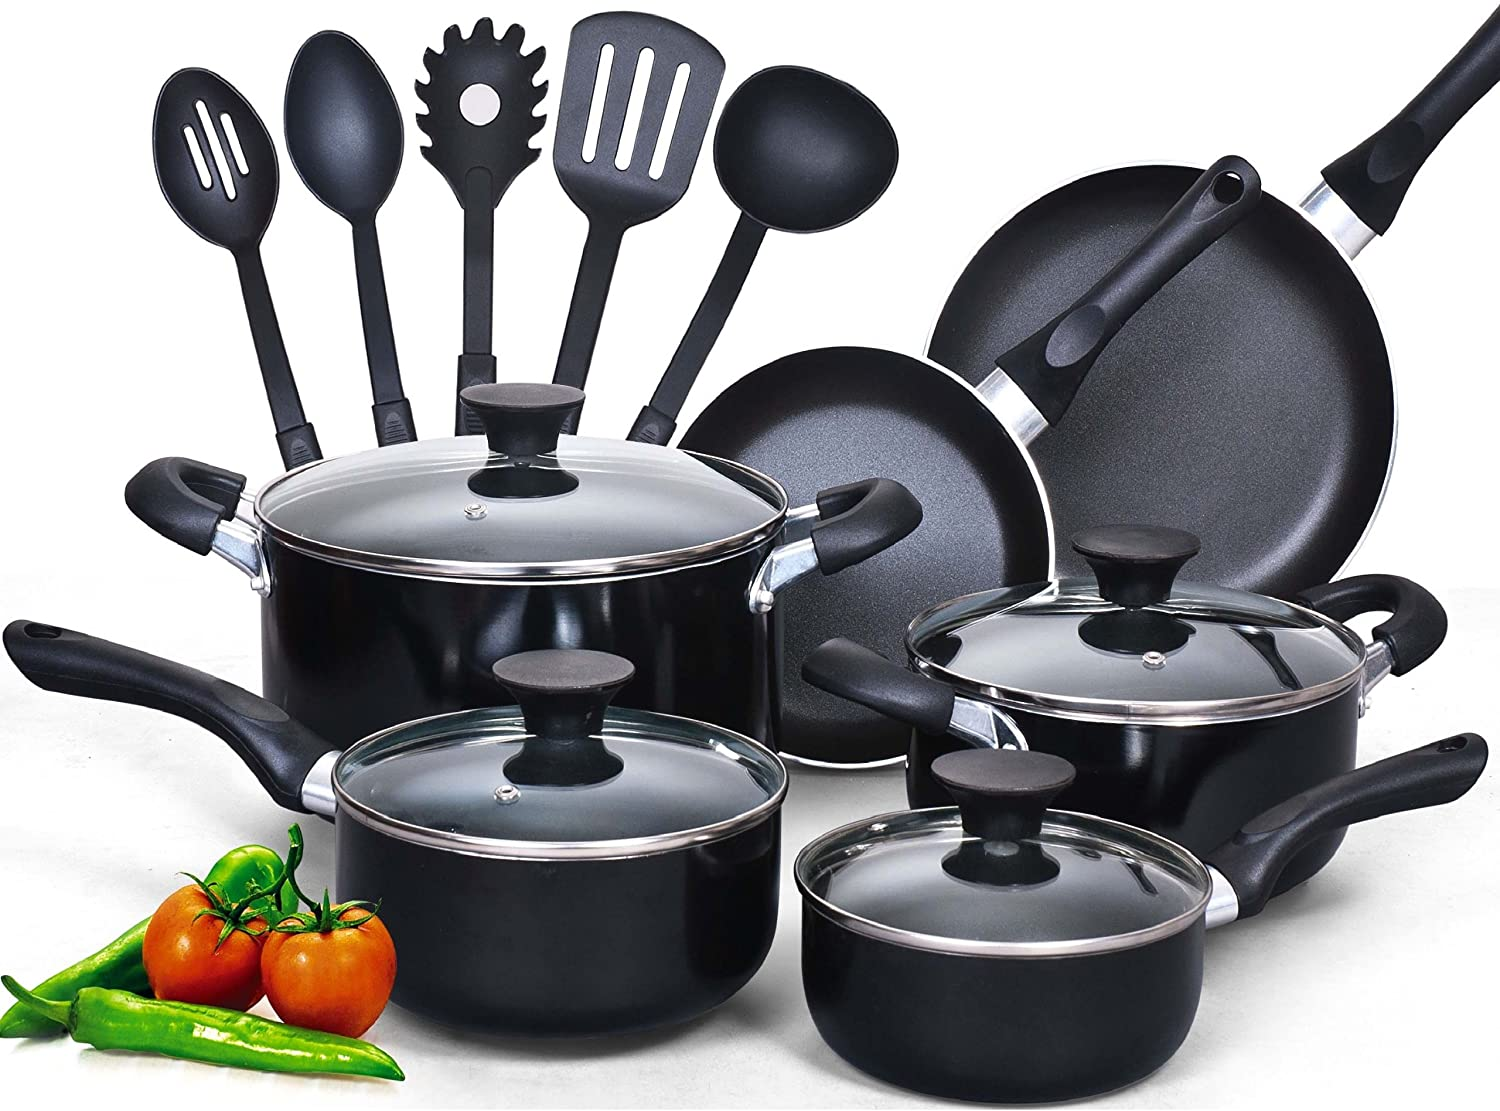 Cook N Home 15-Piece Nonstick Stay Cool Handle Cookware Set, Black